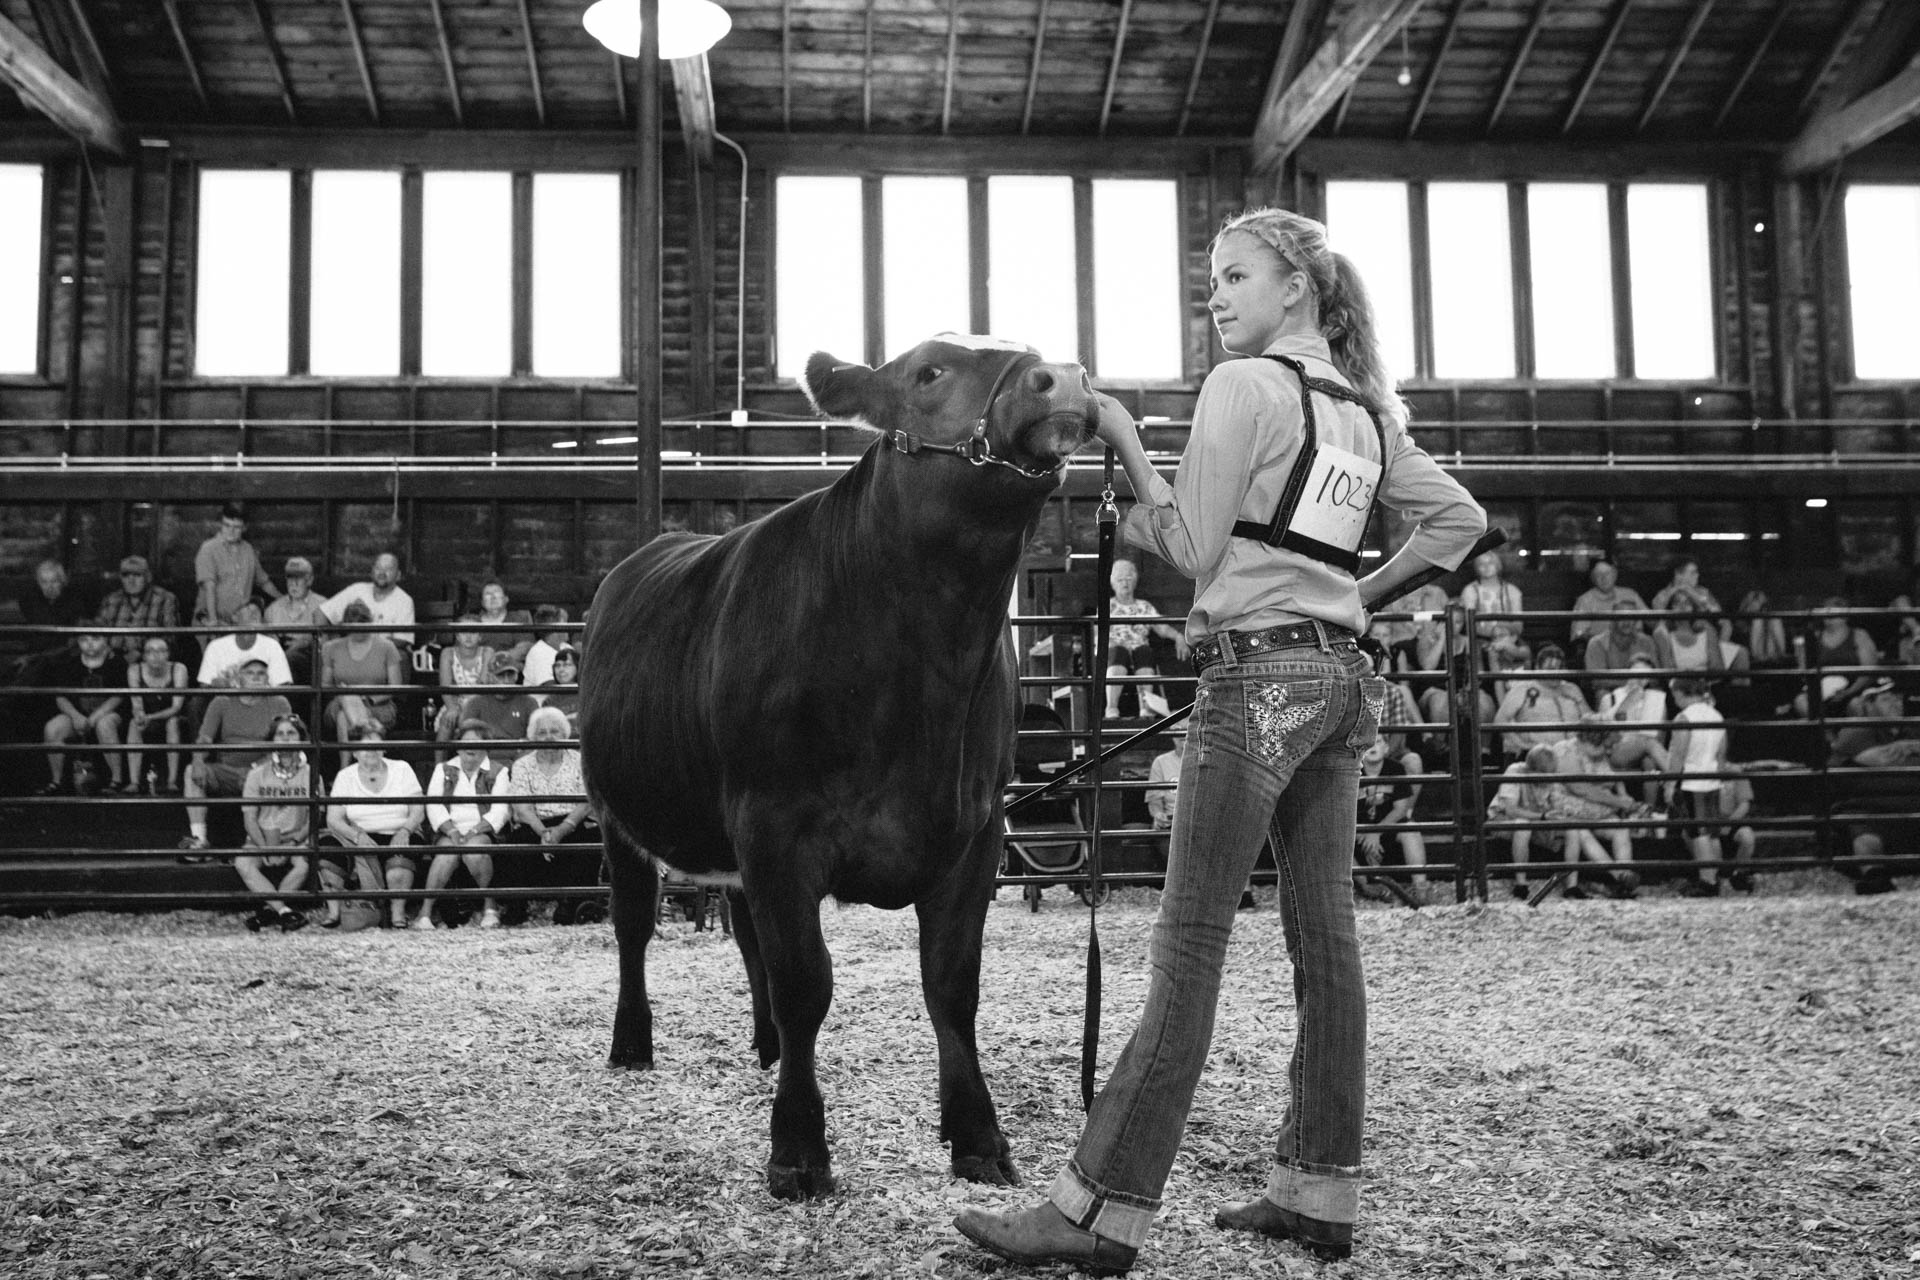 northern-wisconsin-state-fair-teen-shows-her-steer